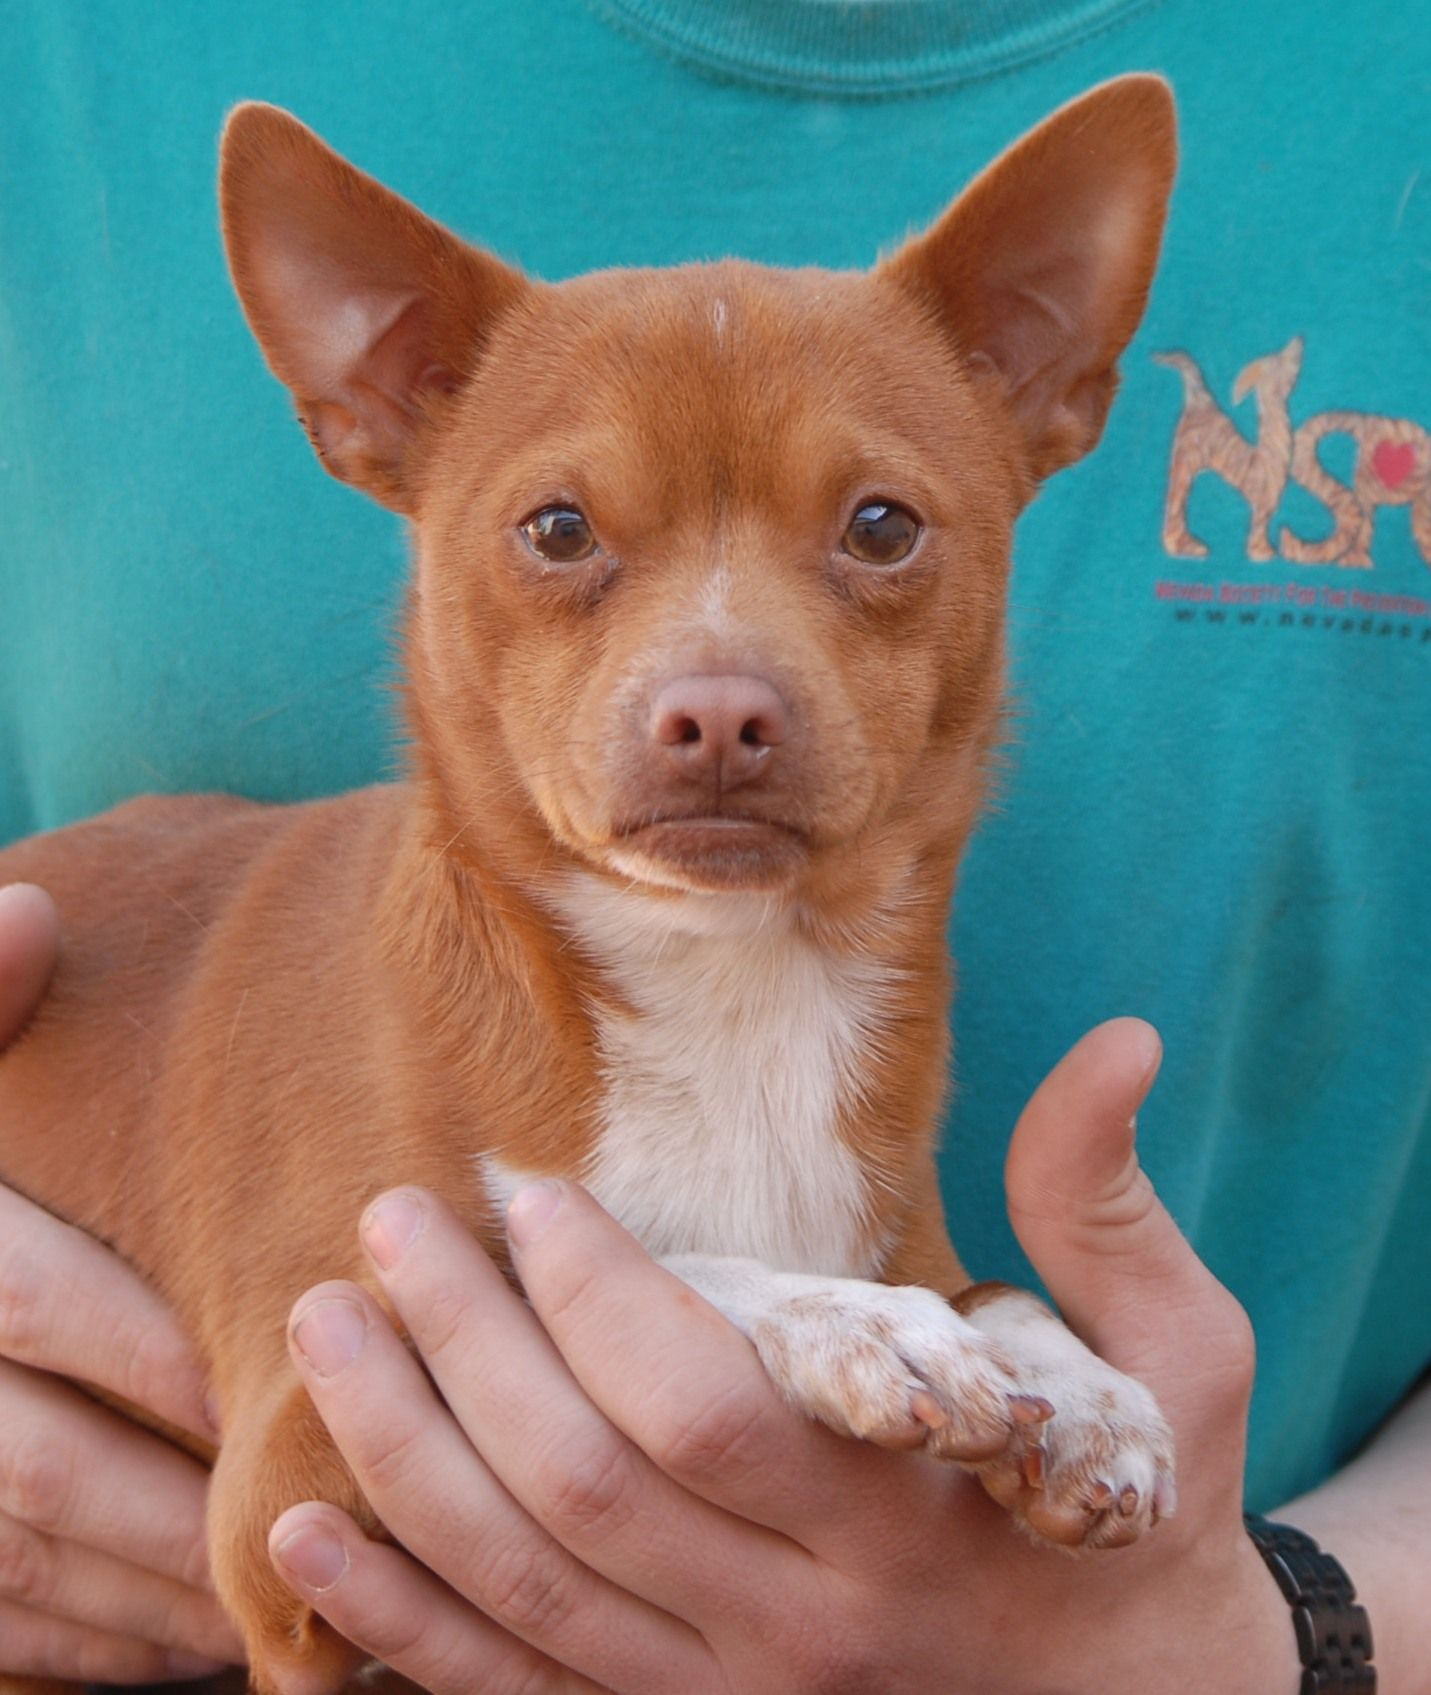 Faith was abandoned inside a North Las Vegas church with no sign of responsible ownership.  He is a very earnest boy, just 1 year of age, a regal little Chihuahua mix with some Shiba Inu features.  Faith is now neutered and debuting for adoption today at Nevada SPCA (www.nevadaspca.org).  He gets along very well with other dogs and only asks for kindness and compassion.